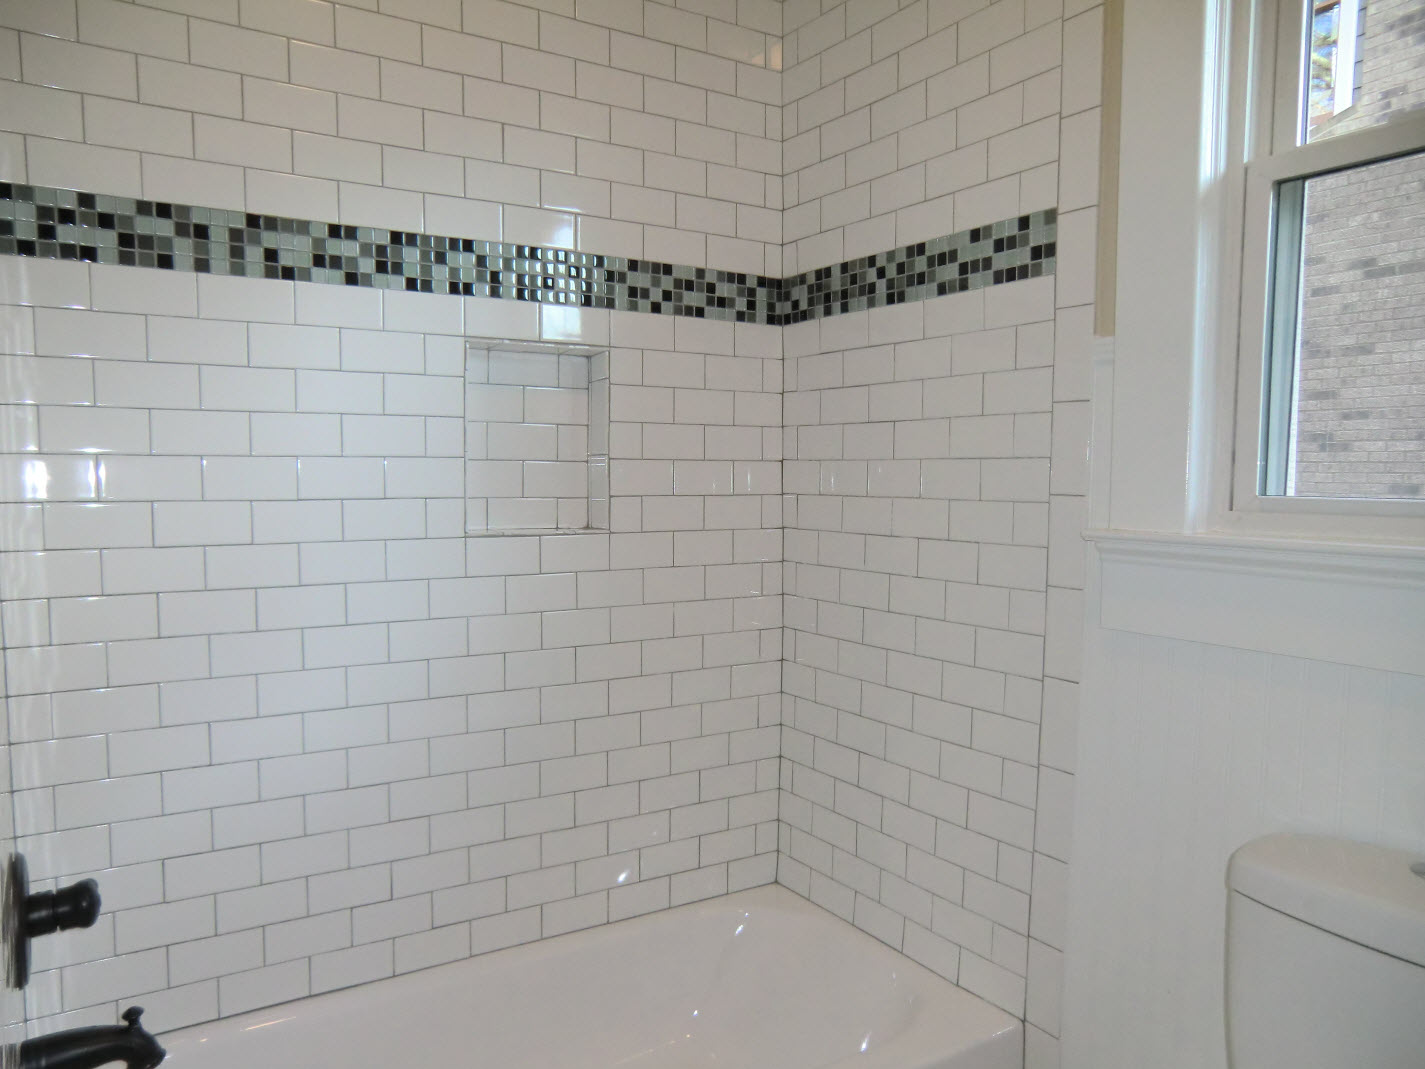 Guest Bath Tub With Subway Tile Surround Jpg 1425 1069